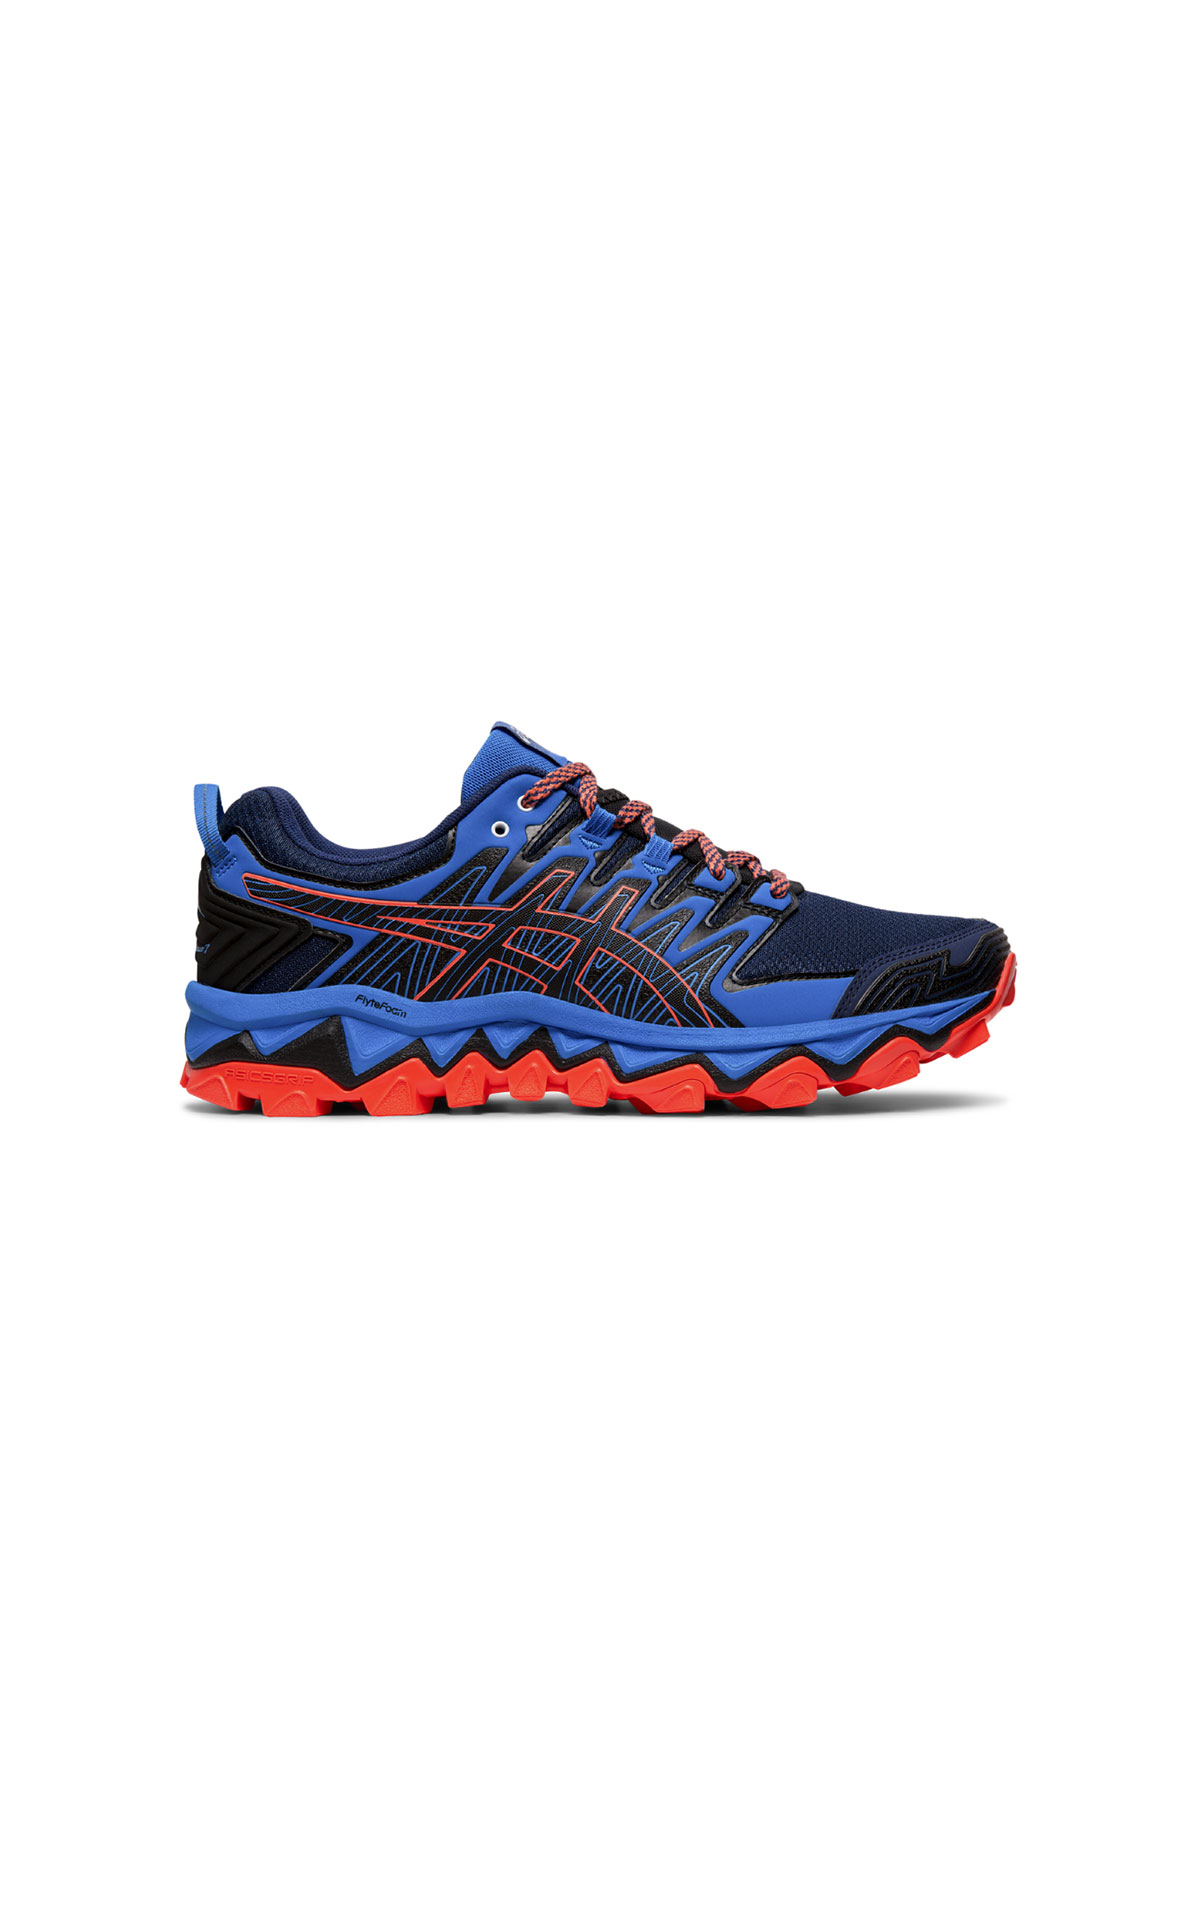 ASICS The Bicester Village Shopping Collection